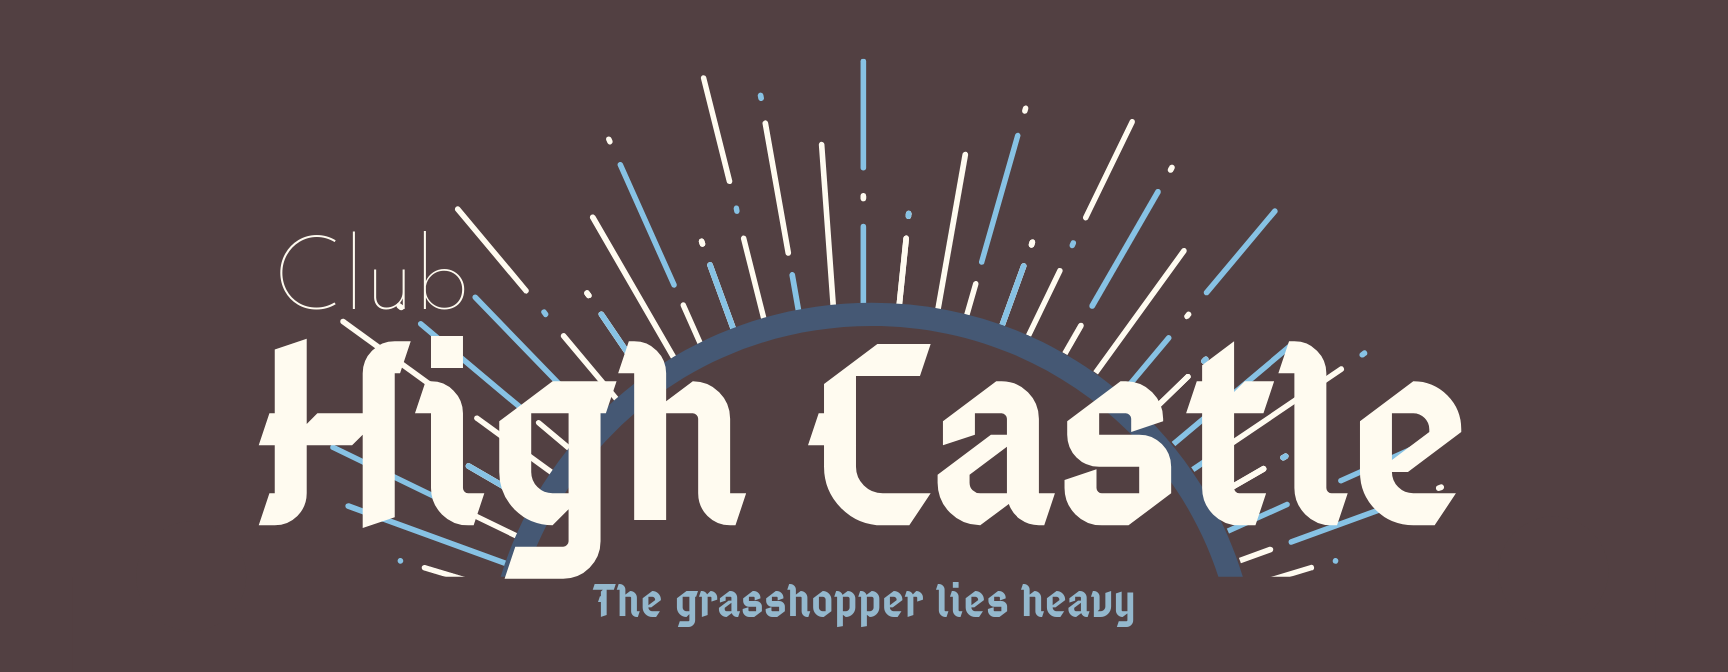 Club High Castle